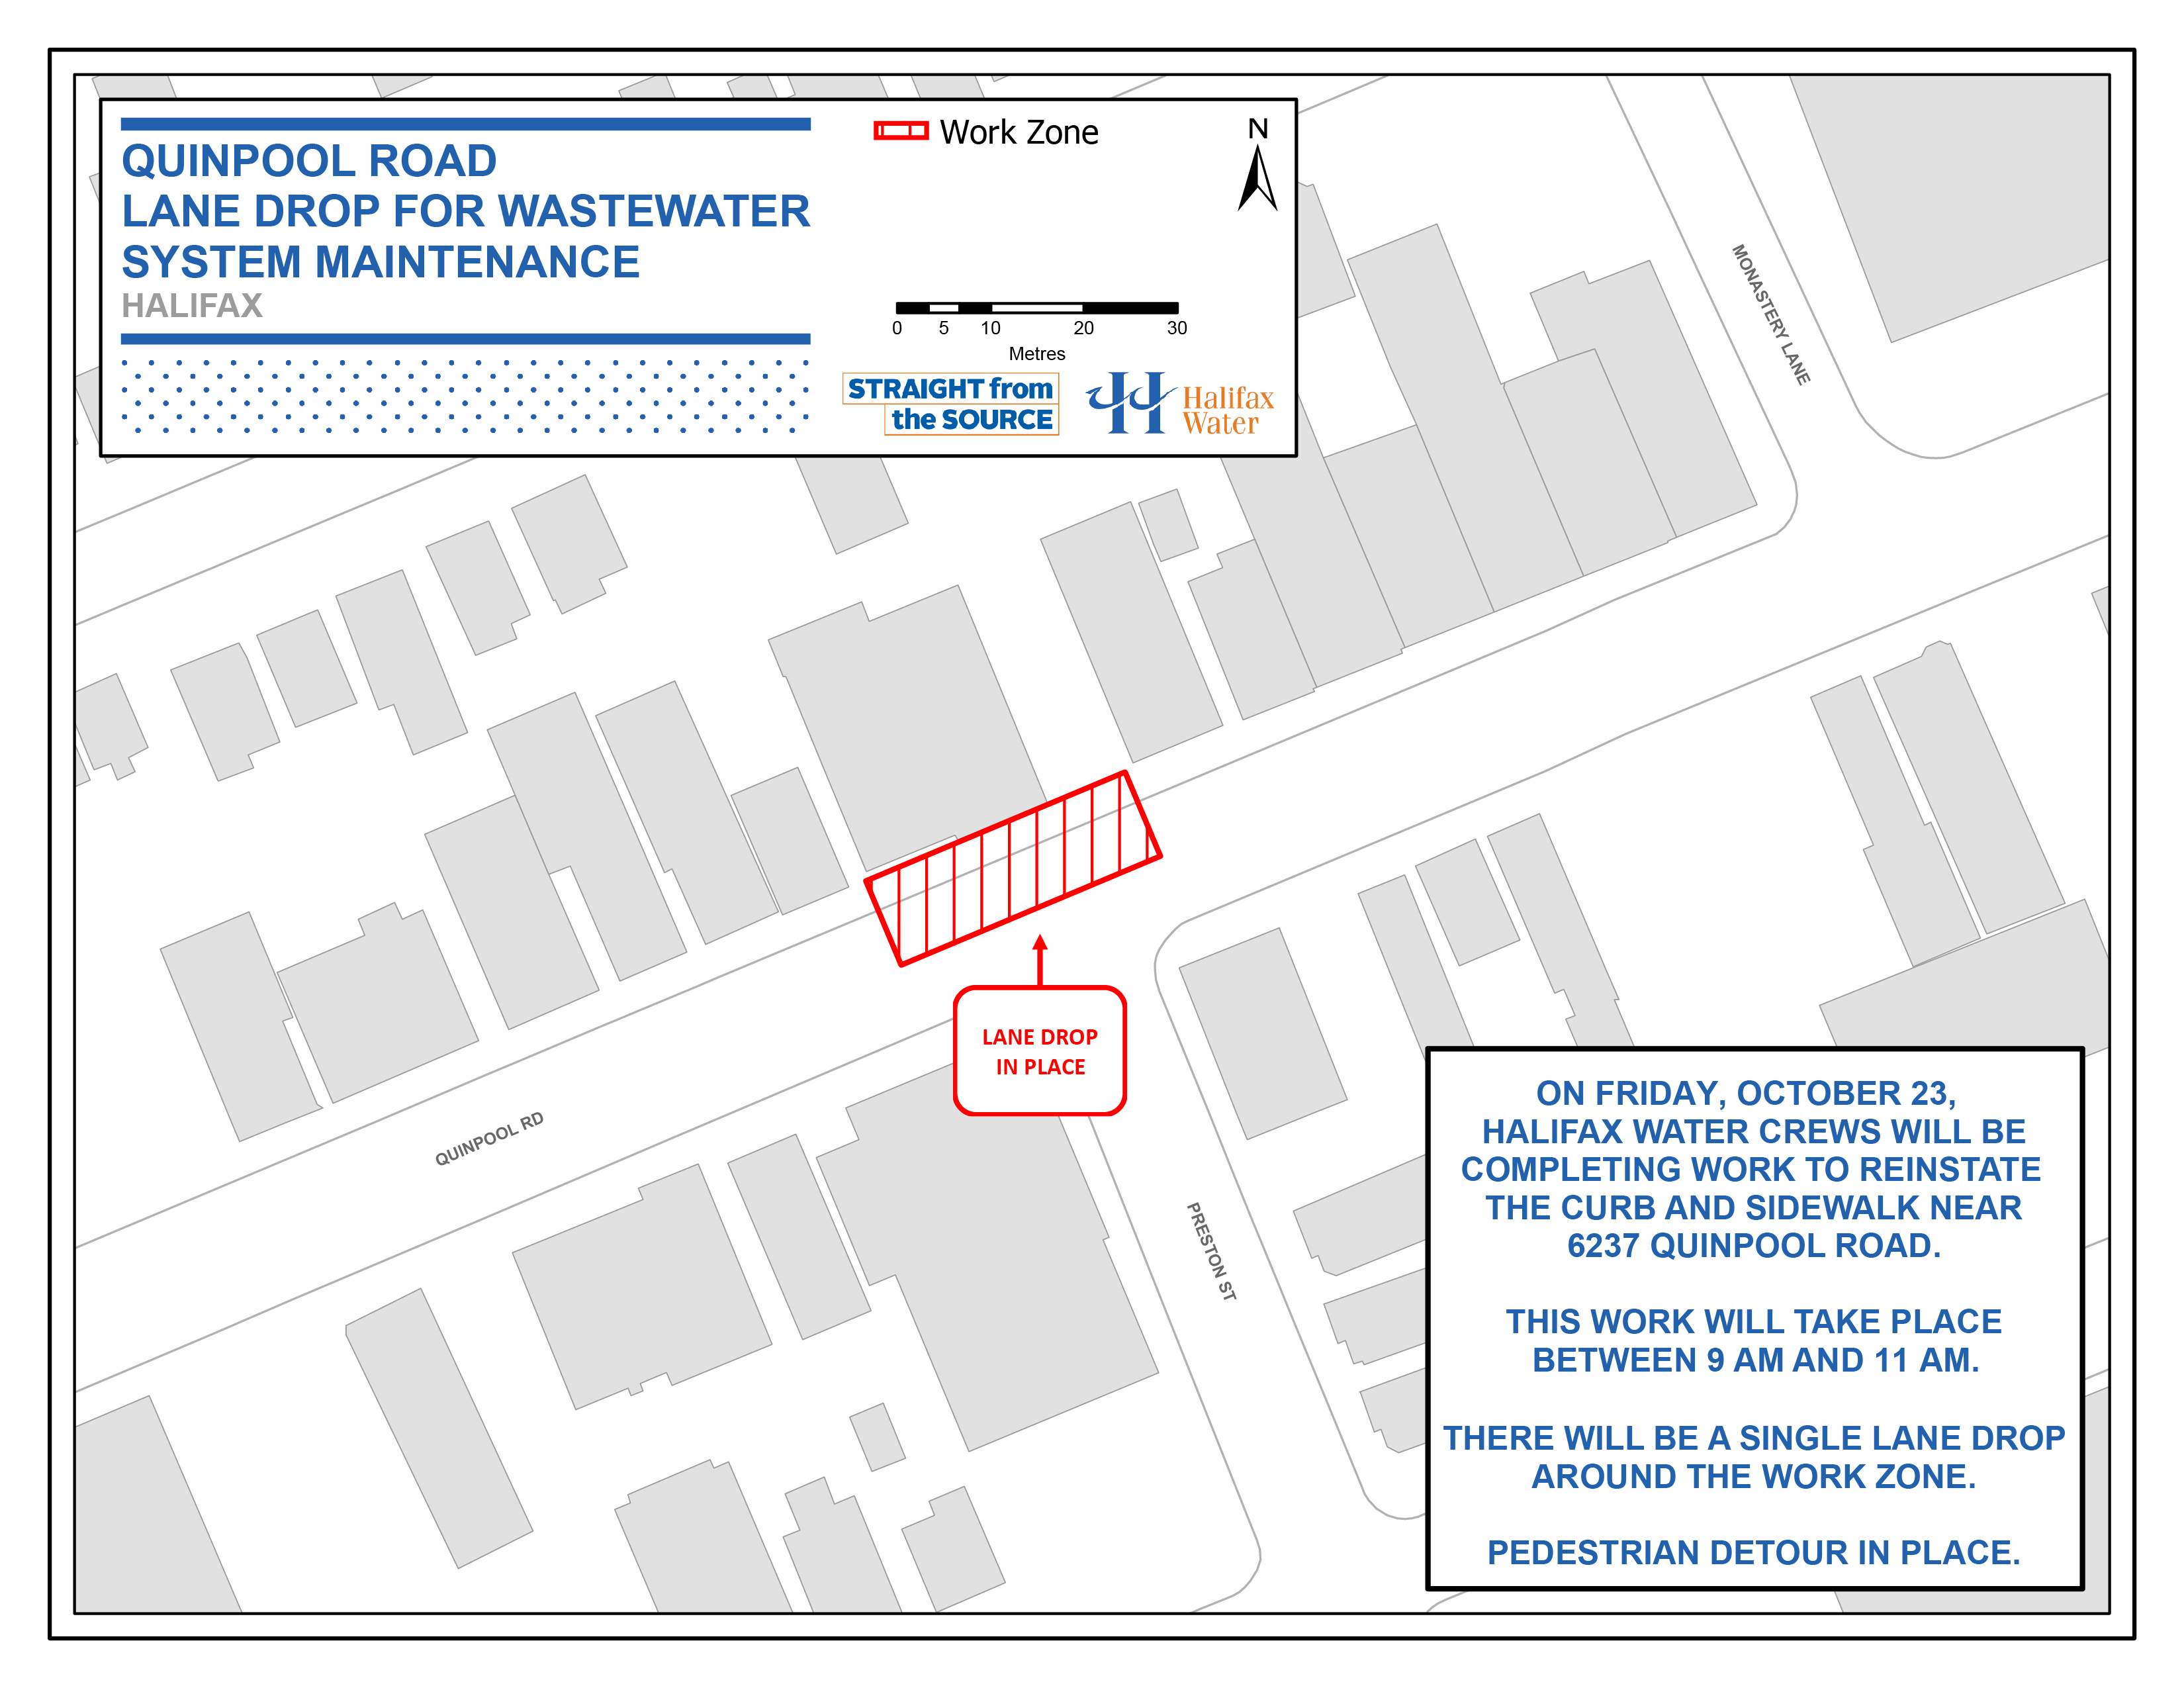 Halifax Water PSA Map - Quinpool Road – Lane Drop for Wastewater System Maintenance